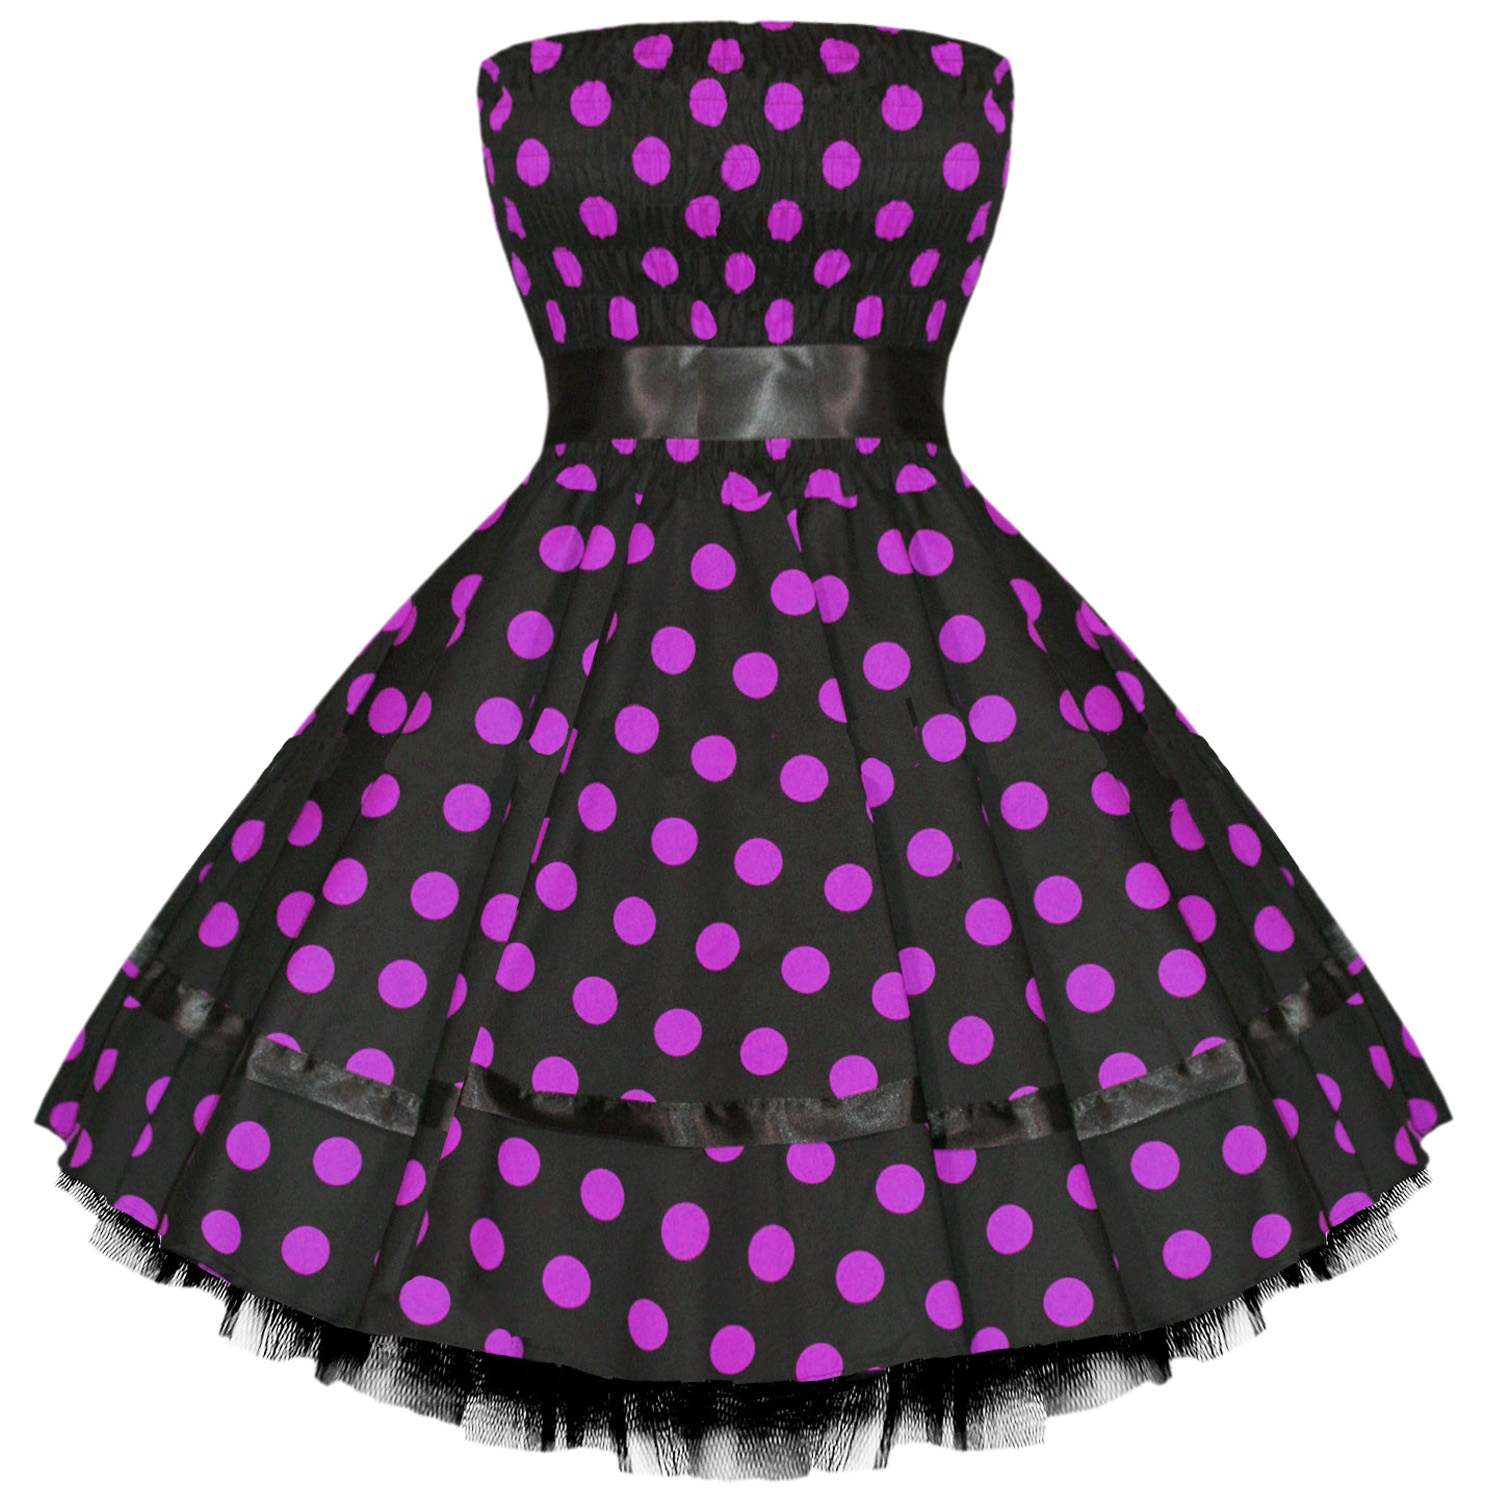 Hearts-and-Roses-London-New-Polka-Dot-Vintage-50s-Retro-Swing-Party-Prom-Dress